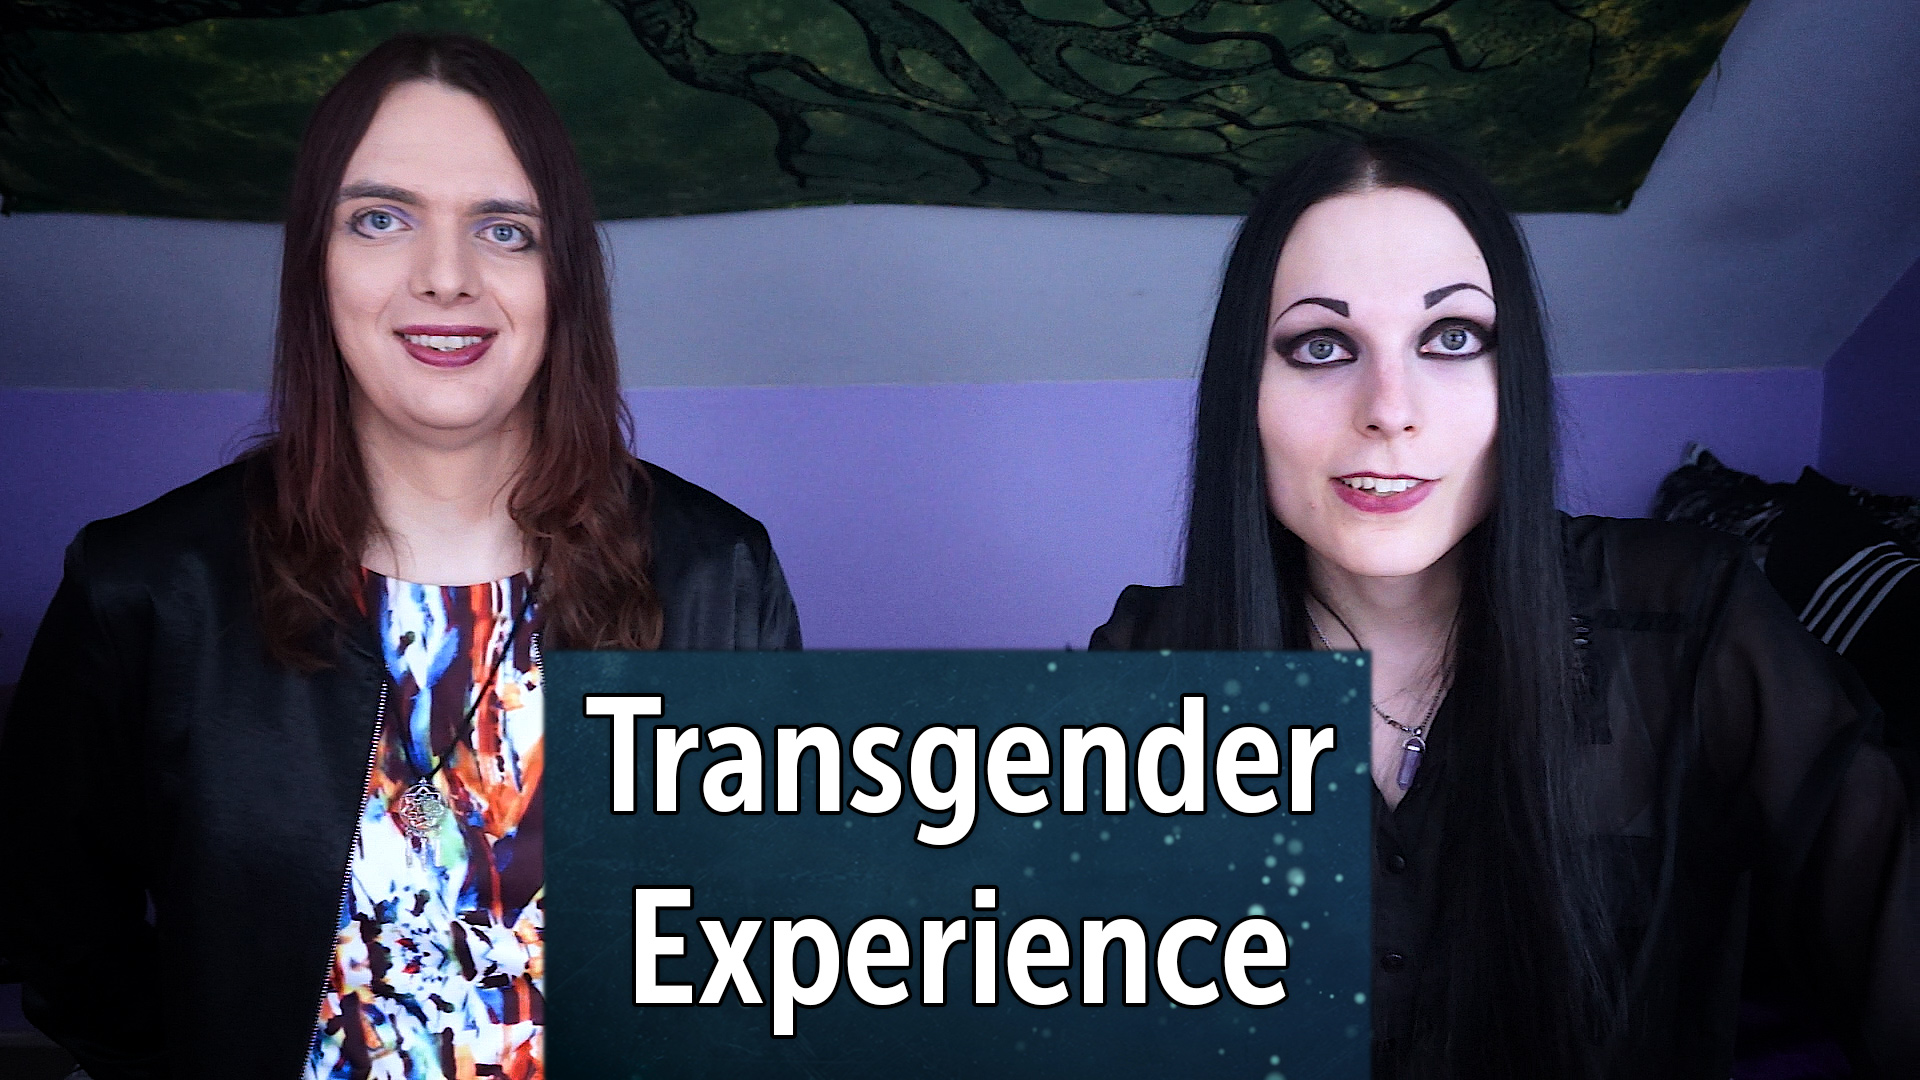 Our Experience with Being Transgender (featuring Simiana)